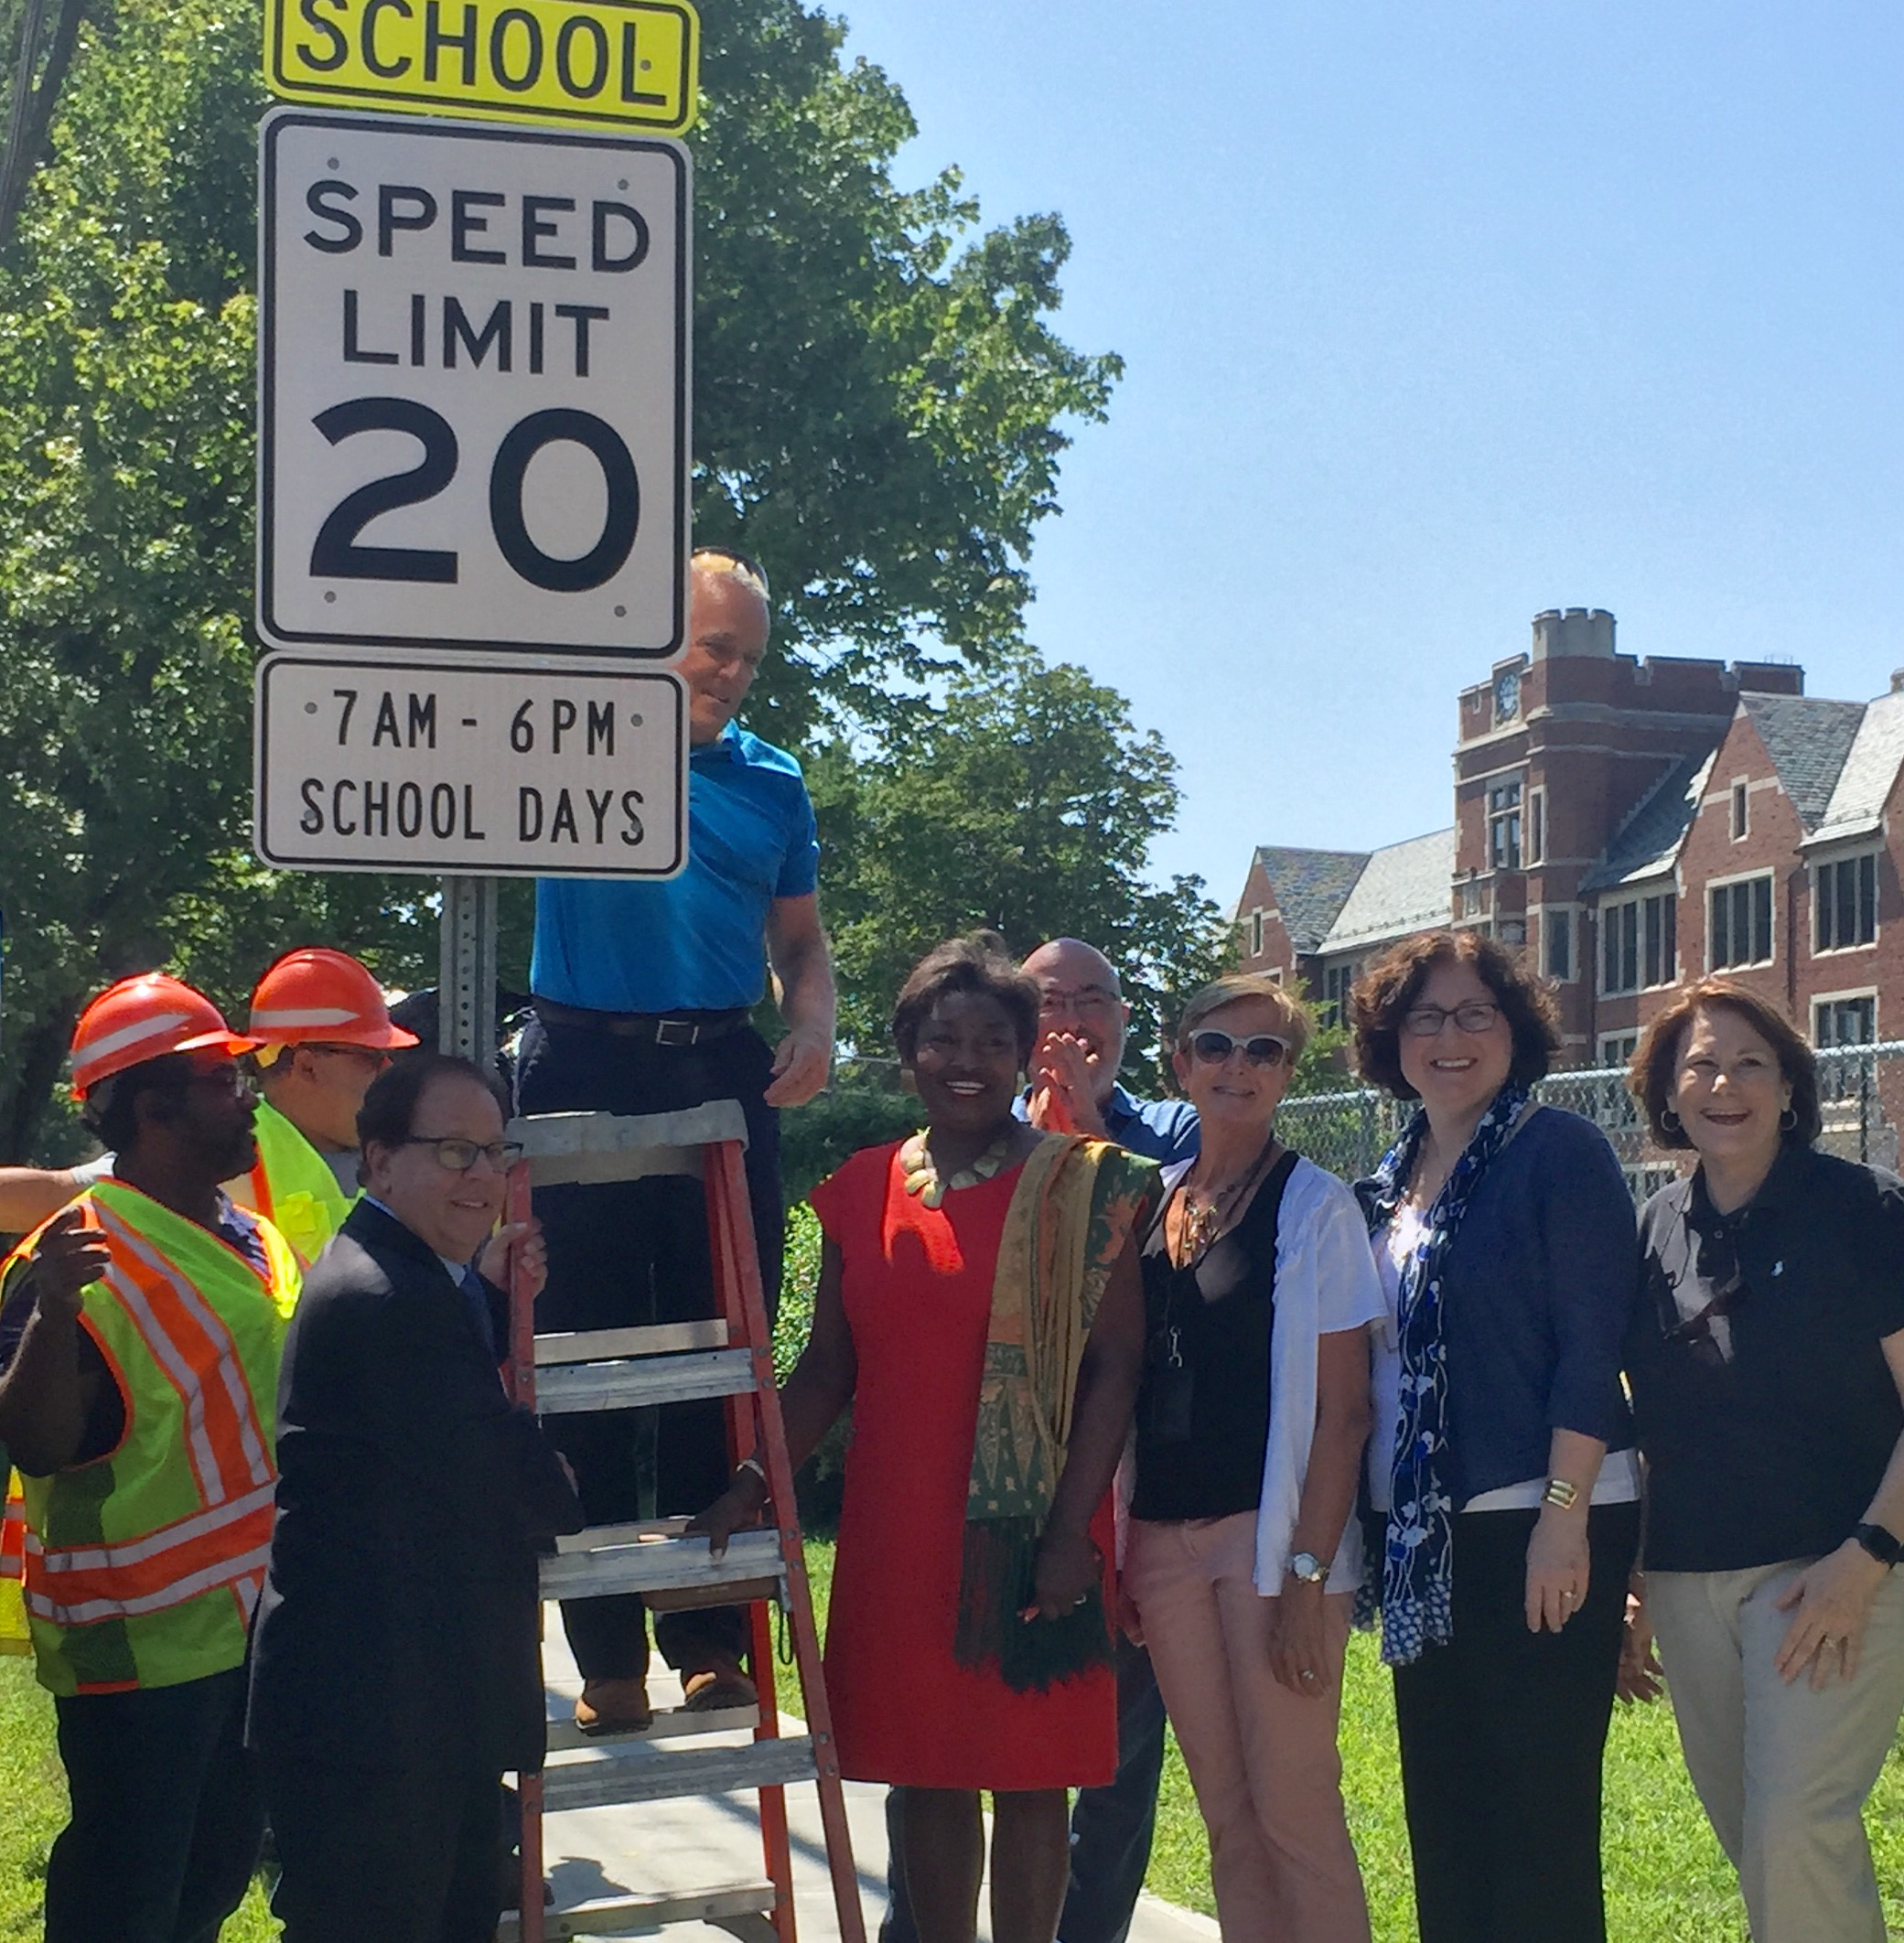 Assemblyman Abinanti 's office helped obtain a new traffic calming sign on Route 9 in Dobbs Ferry.